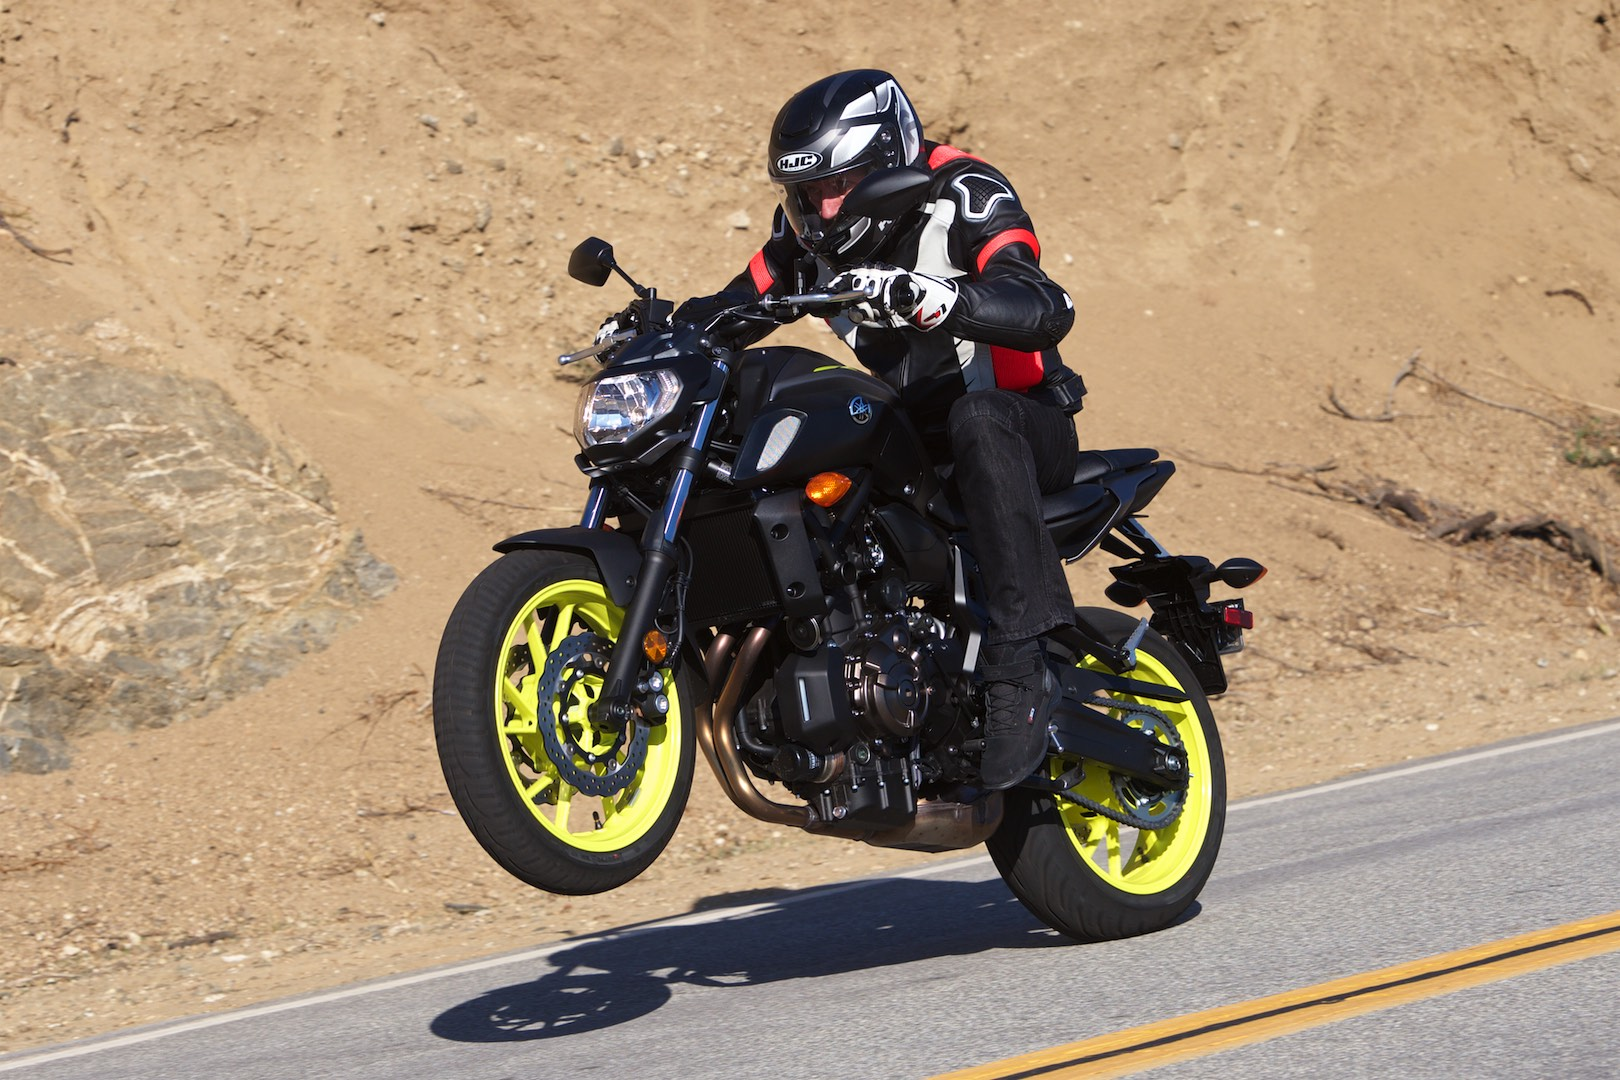 2018 Yamaha MT-07 wheelie